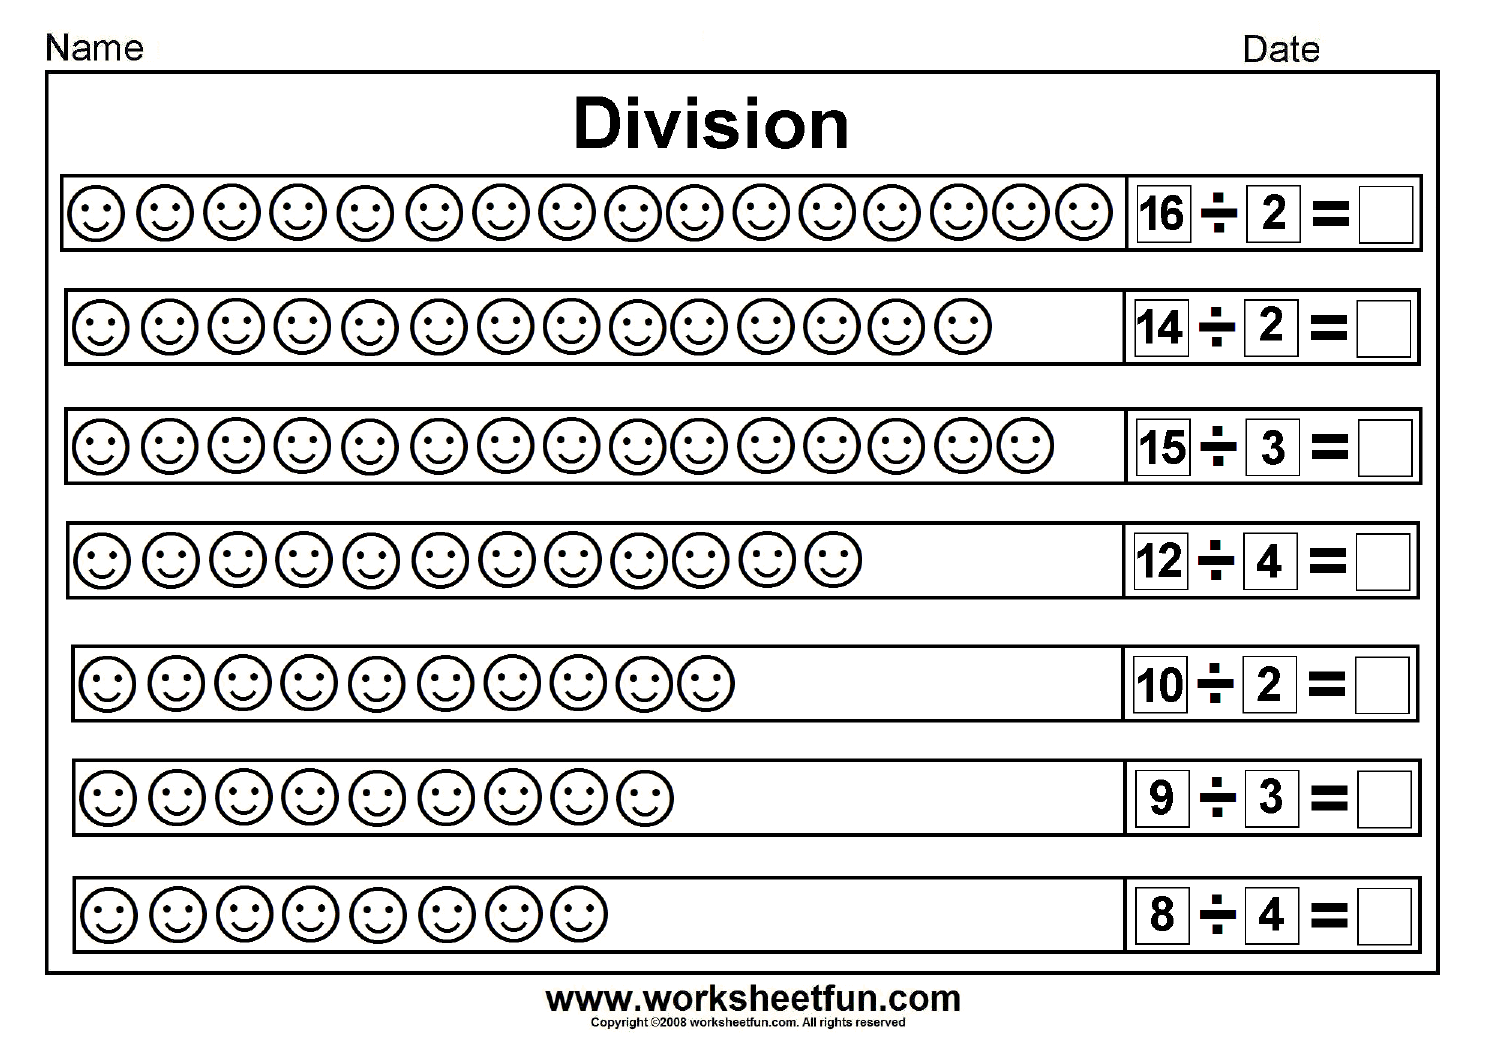 Free Worksheet Beginning Division Worksheets worksheet 595842 picture division worksheets easy for 3rd grade enchantedlearning p